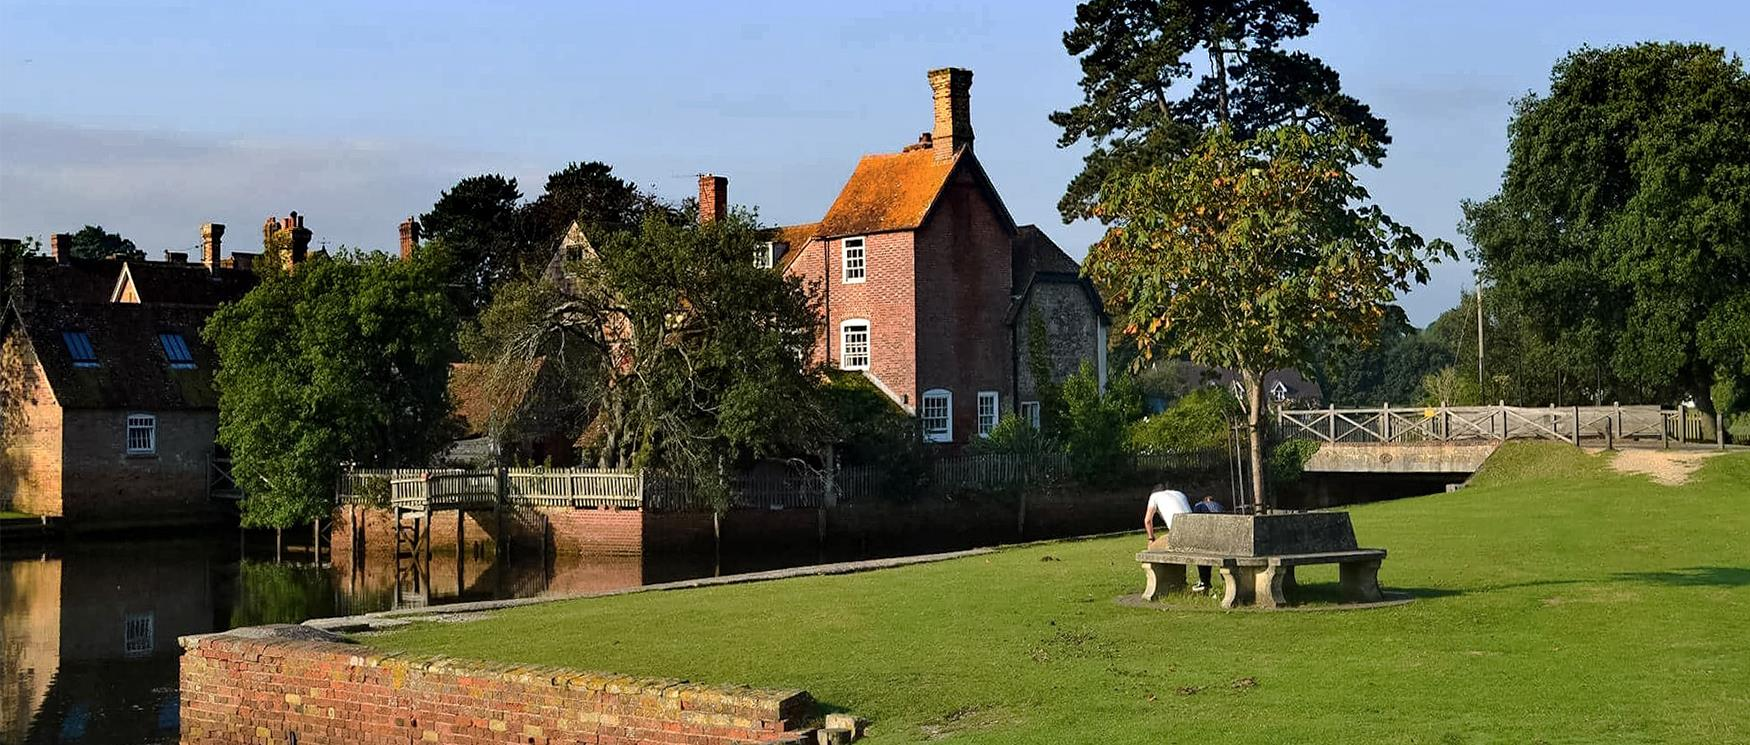 The Village of Beaulieu in the New Forest National Park